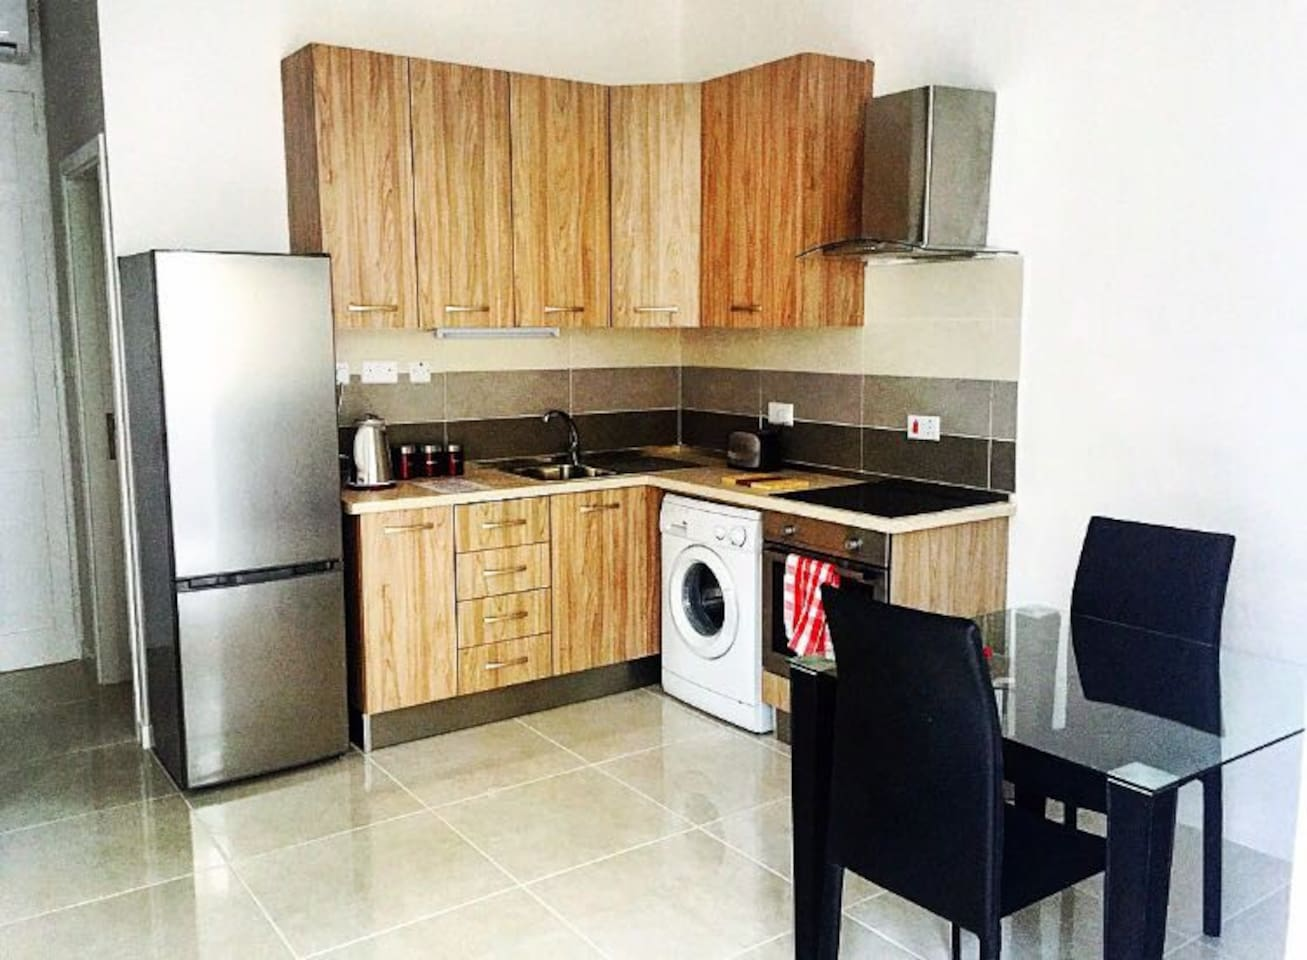 cozy kitchen with all equipment that u might need and dining table